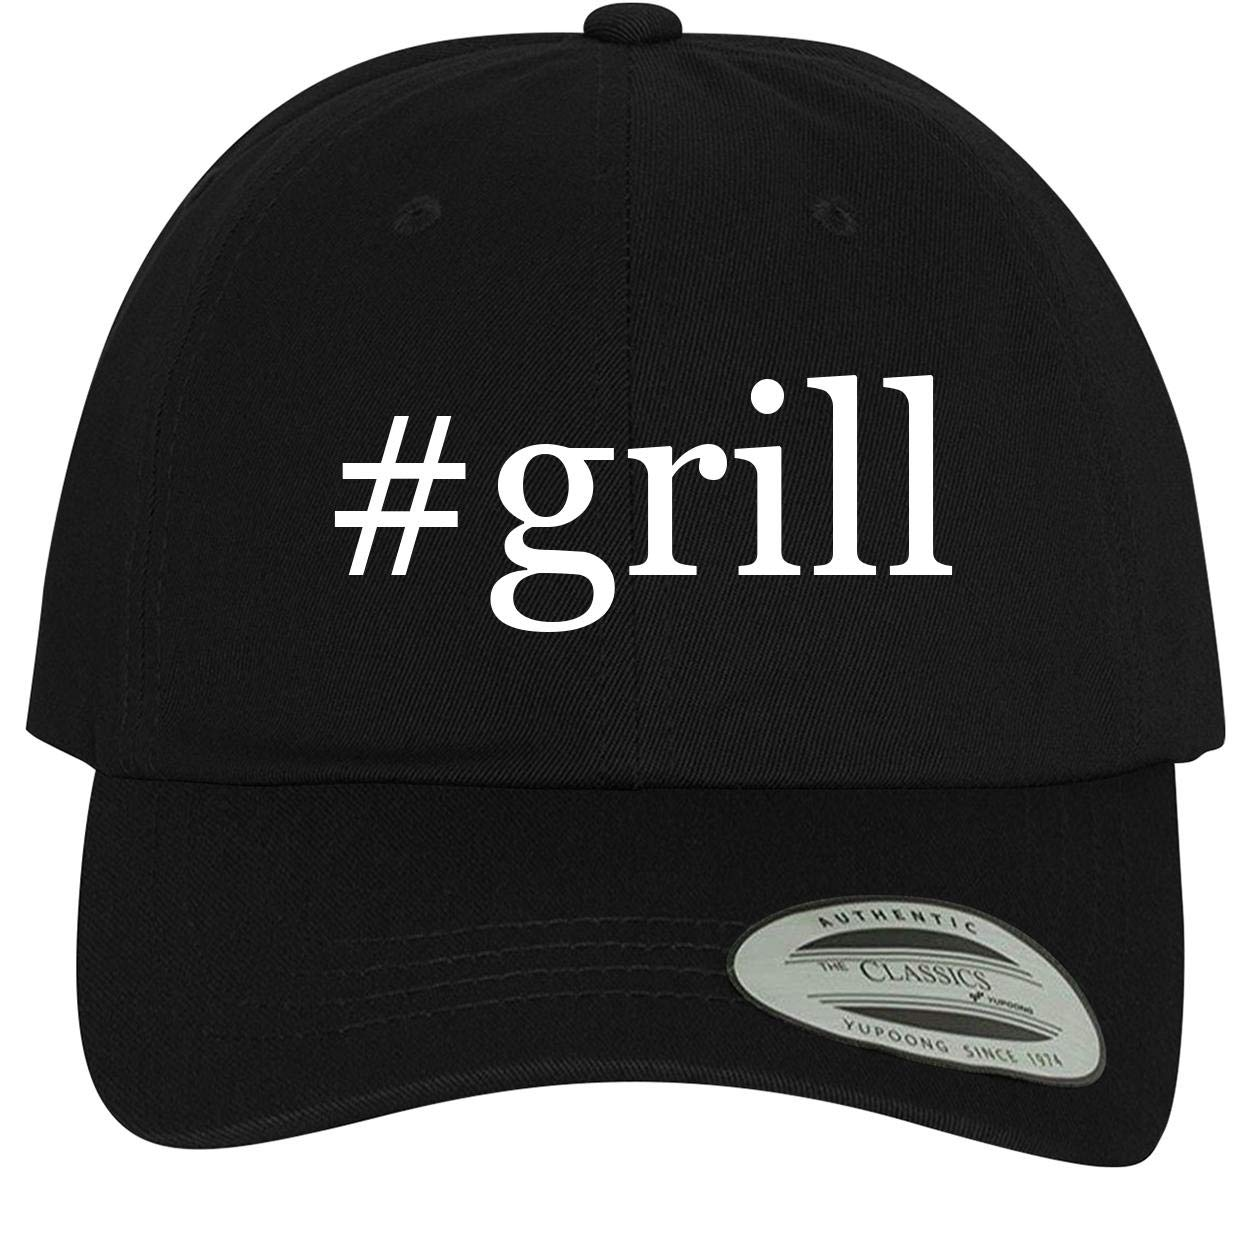 BH Cool Designs #Grill - Comfortable Dad Hat Baseball Cap, Black by BH Cool Designs